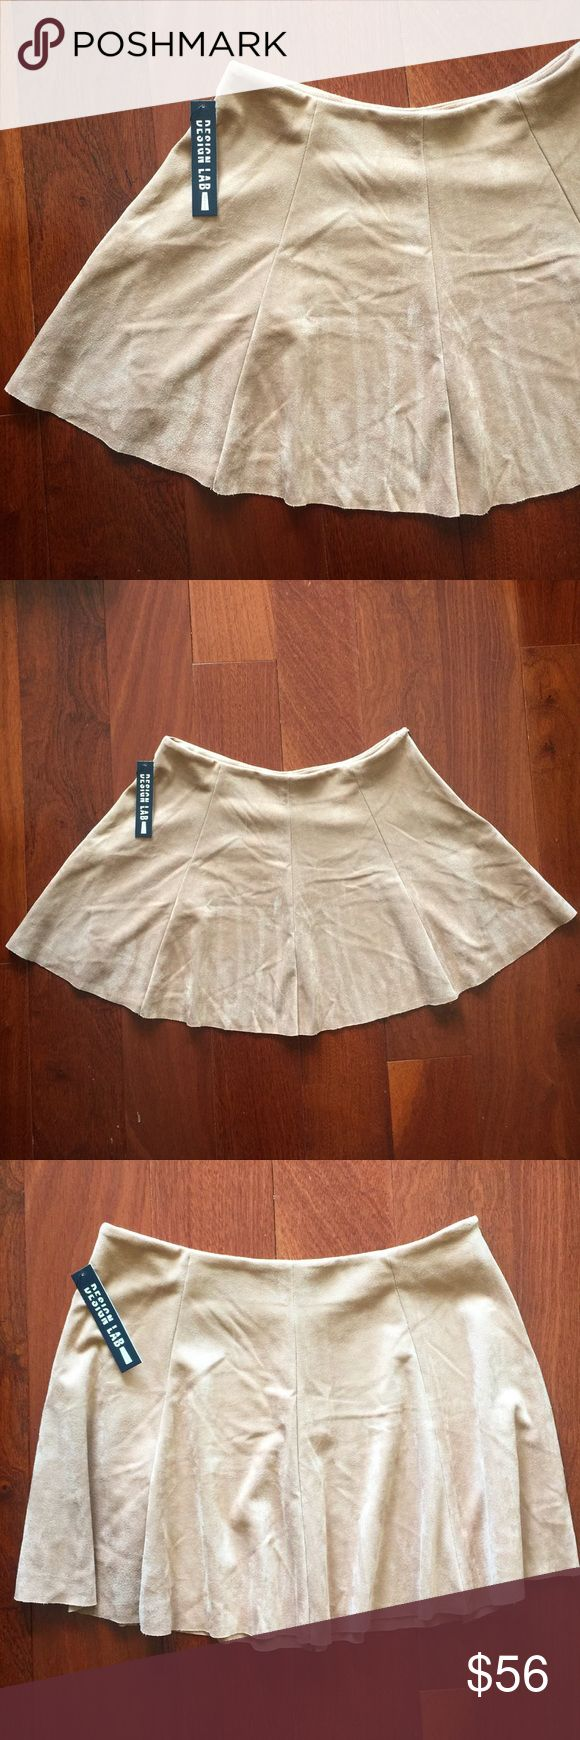 """🆕 Design Lab Faux Suede Tan Skirt New with tags. Beautiful """"J. Copper"""" faux suede tan skirt by Design Lab. Very soft and flowy. Side zipper. Size Large. 92% Polyester, 8% Spandex. Waist across: 15.5"""". Length: 14.5"""". Design Lab Skirts"""